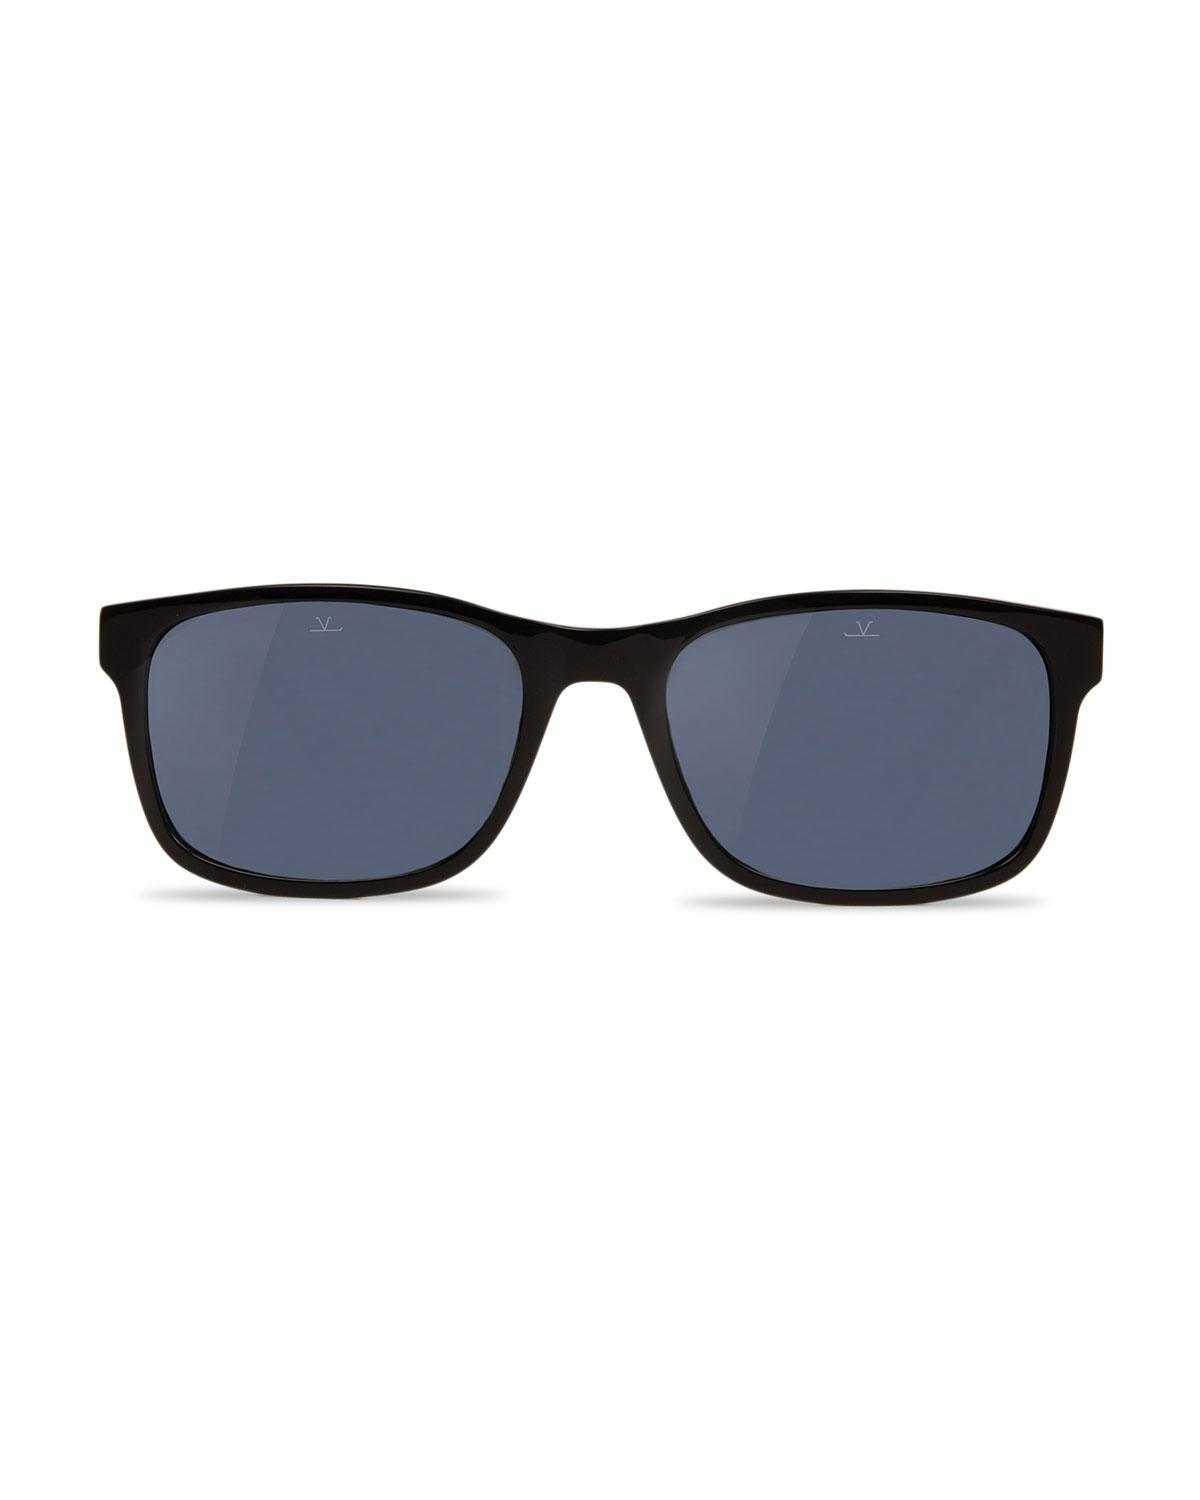 0fdf7cb9774 Lyst - Vuarnet District Medium Rectangular Sunglasses in Black for Men